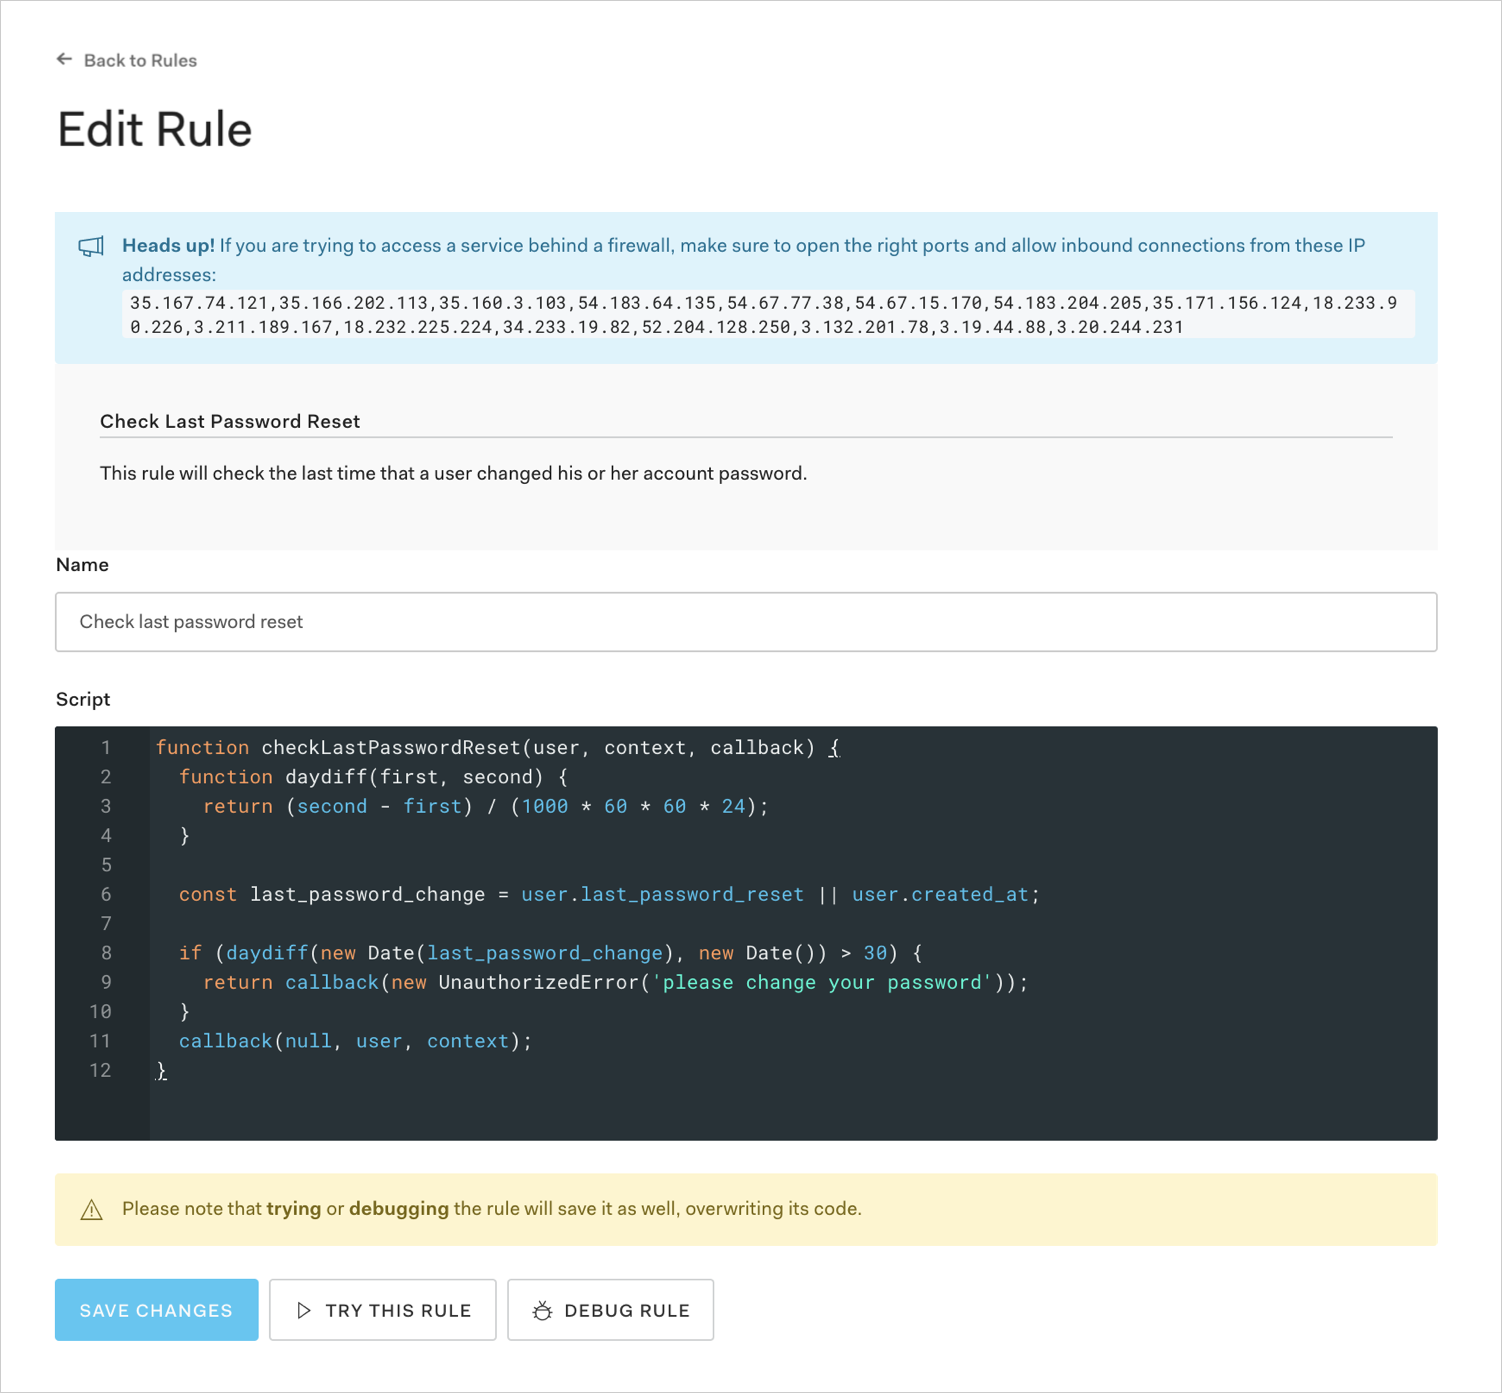 Dashboard - Auth Pipeline - Rules - Edit Rule